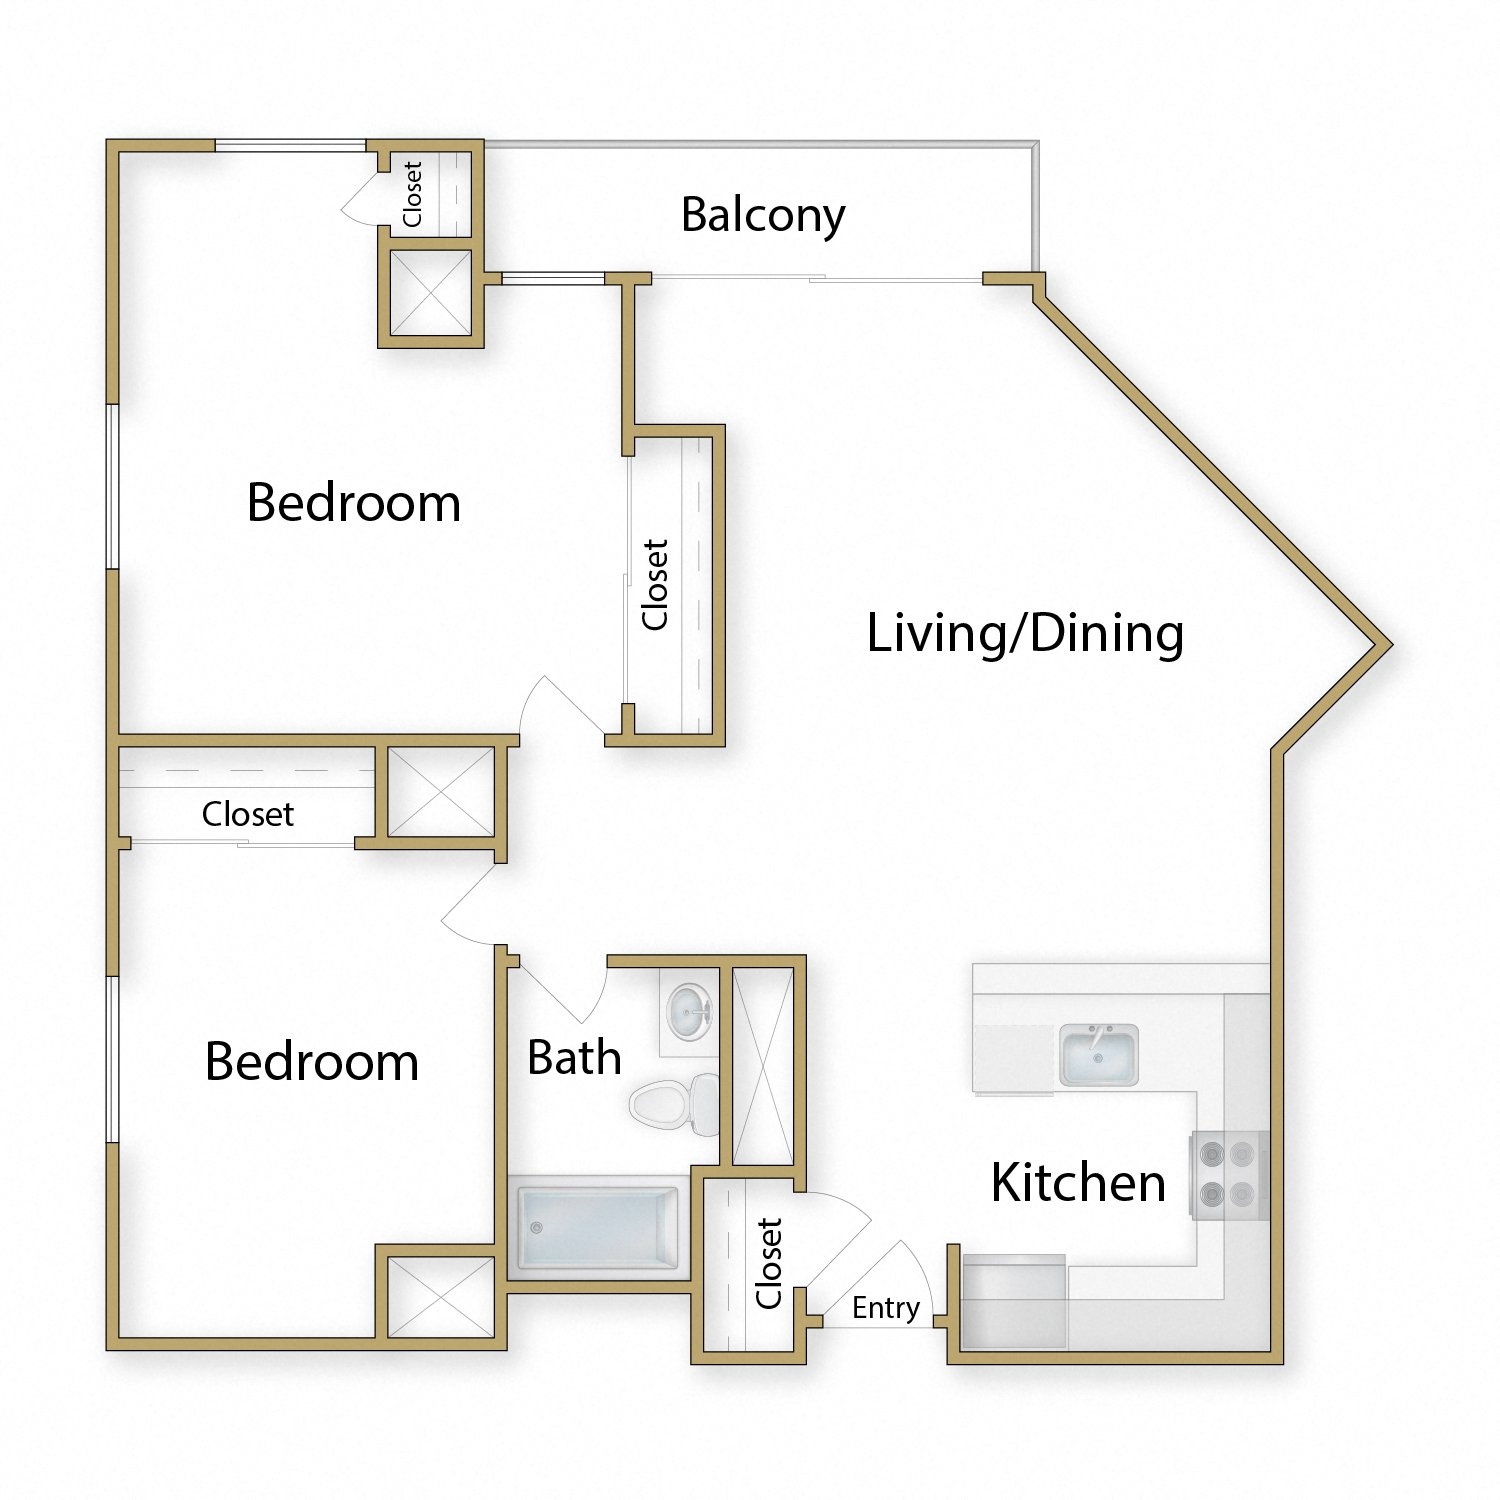 Pacifica floor plan diagram. Two bedrooms, one bathroom, an open kitchen dining and living area, and a balcony.